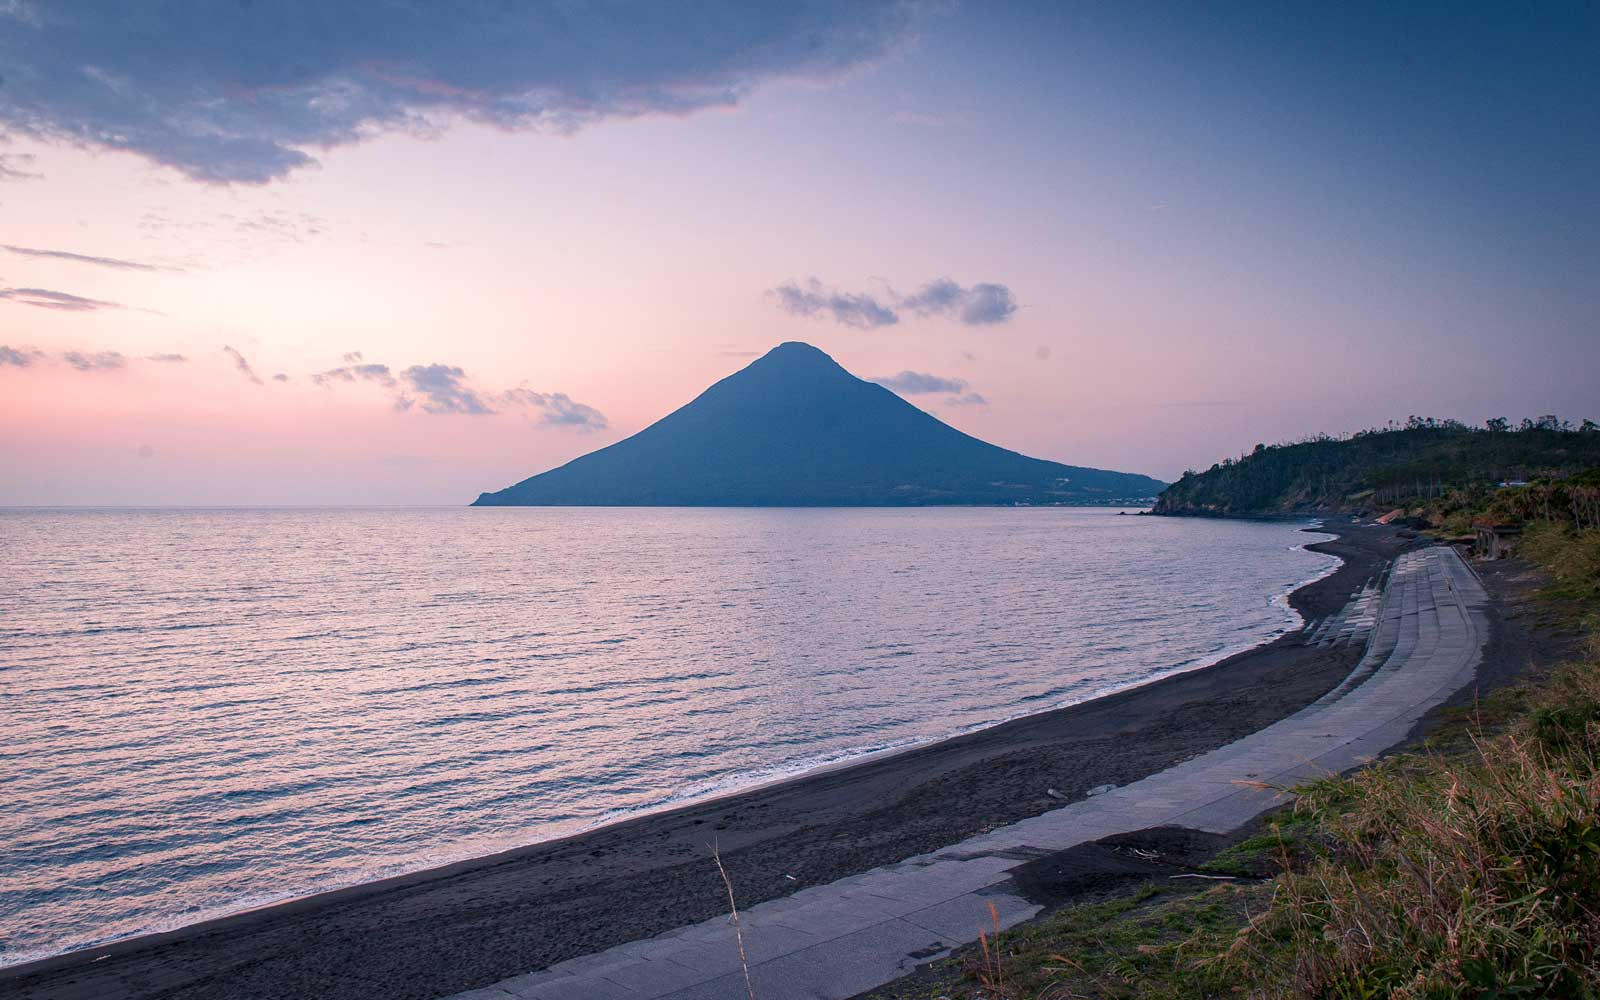 The Essential 4-day Itinerary Around Kyushu, According to T+L A-List Travel Advisor Tesia Smith